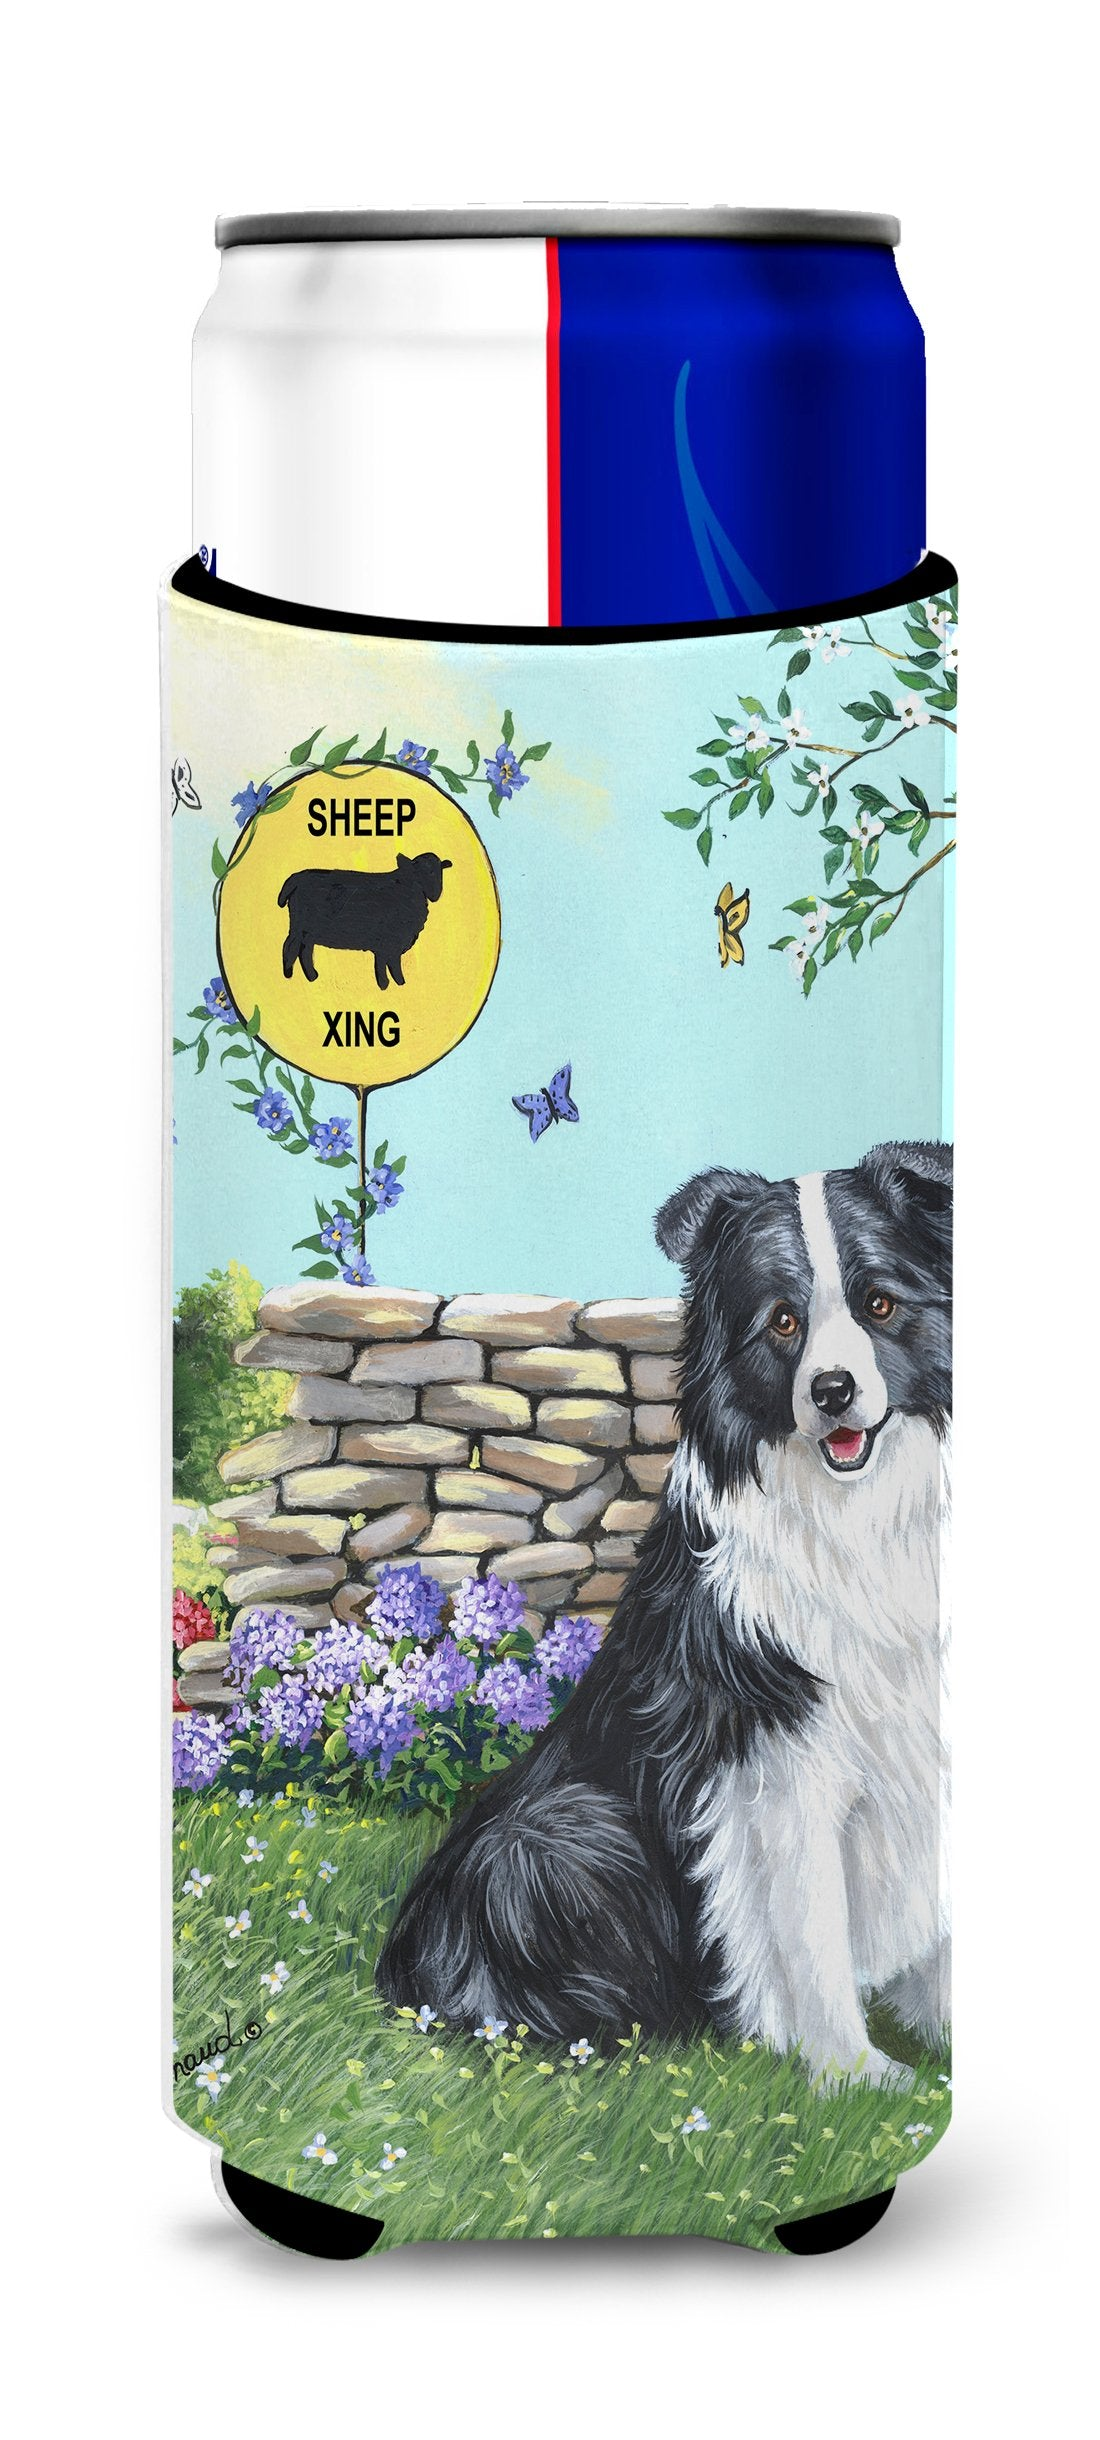 Border Collie Crossing Ultra Hugger for slim cans PPP3030MUK by Caroline's Treasures